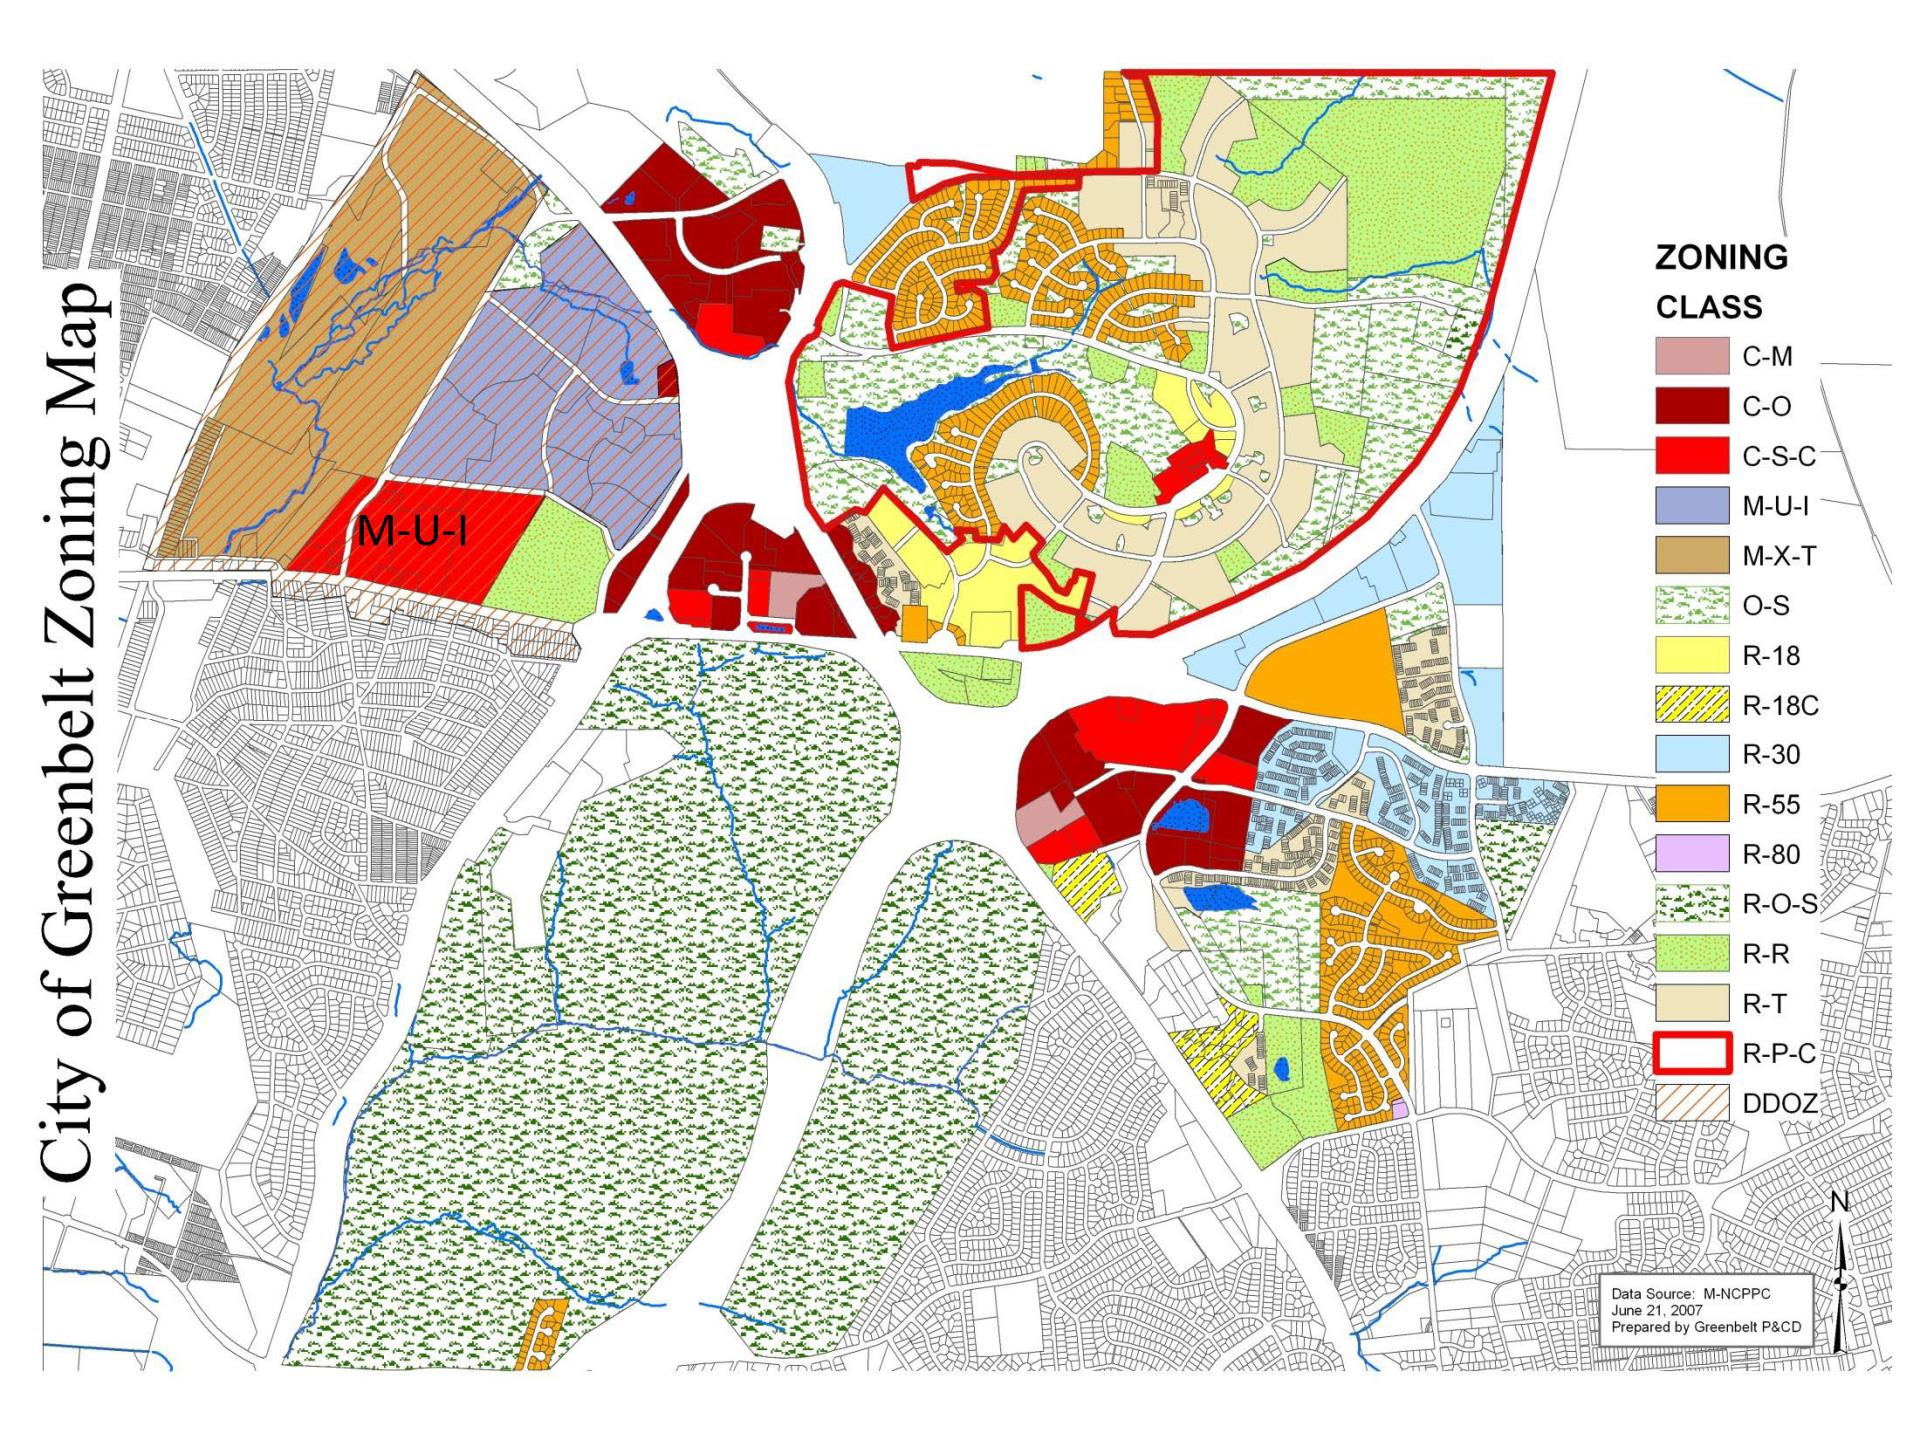 Greenbelt Zoning Map